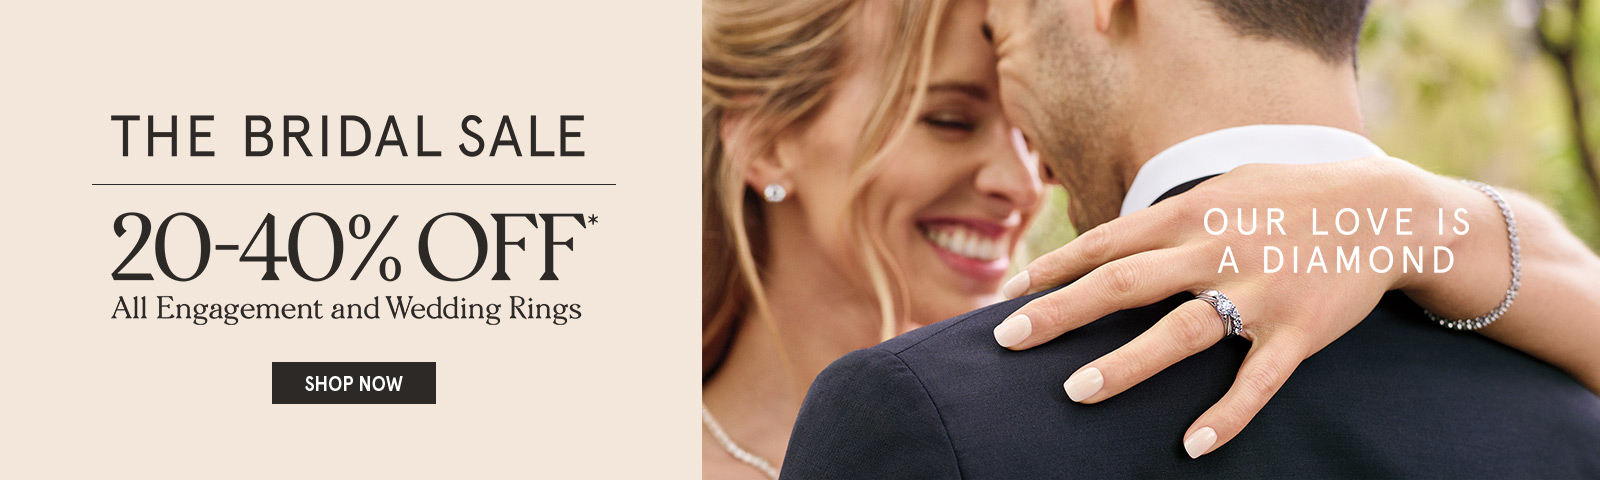 3927fa31d 20-40% Off* ALL Engagement & Wedding Rings>